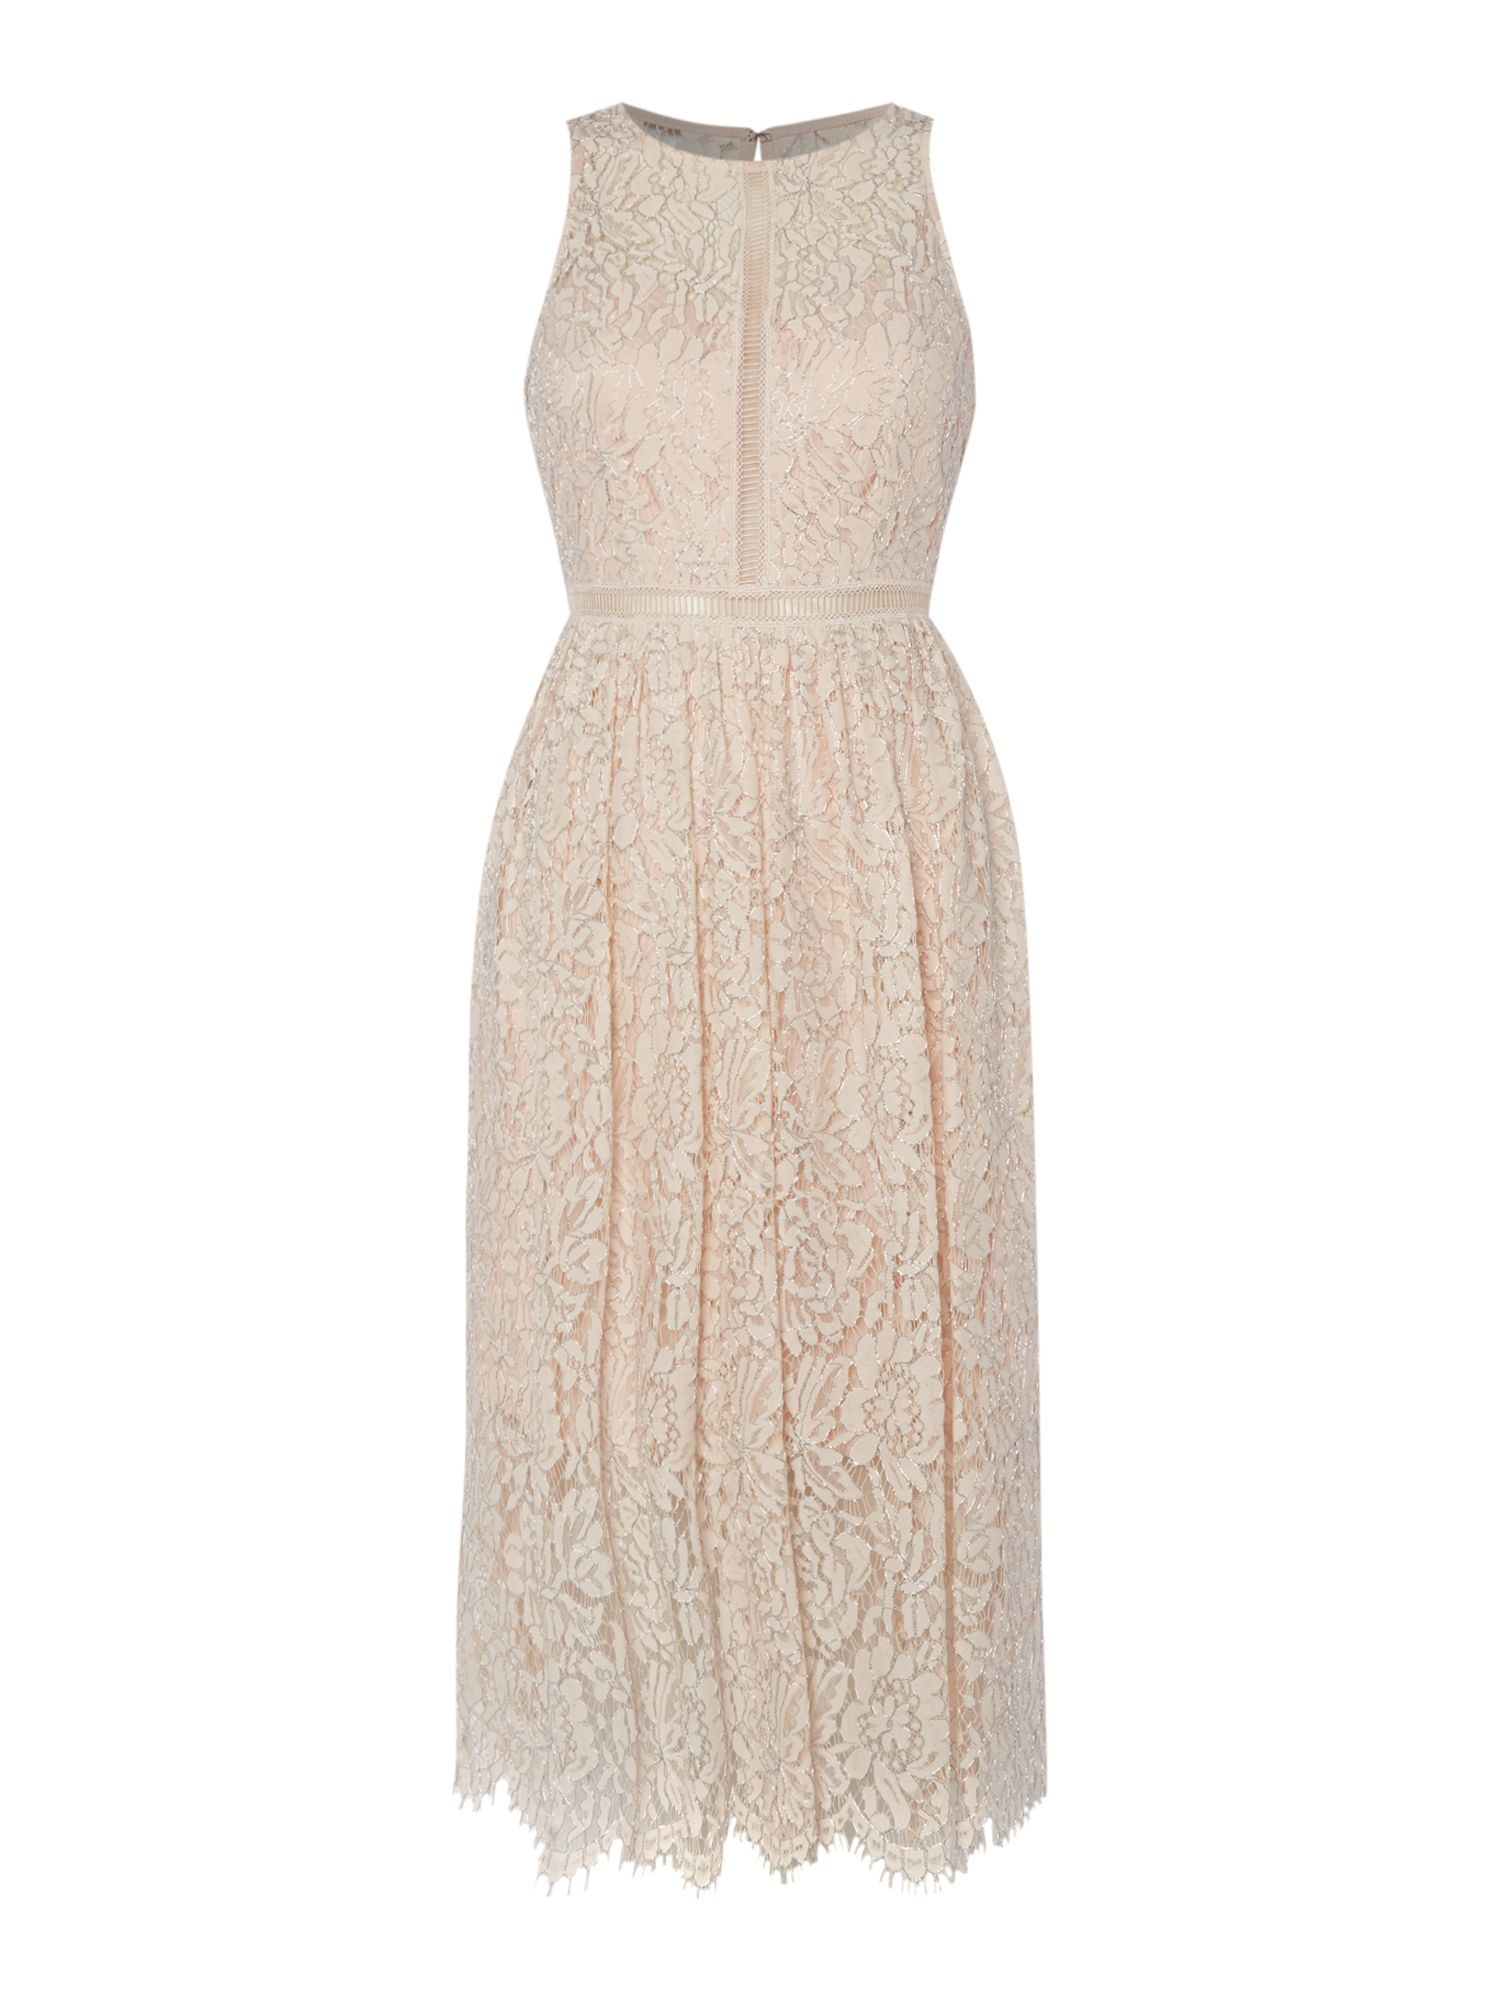 Adrianna Papell Lace dress with ladder detail, Pink